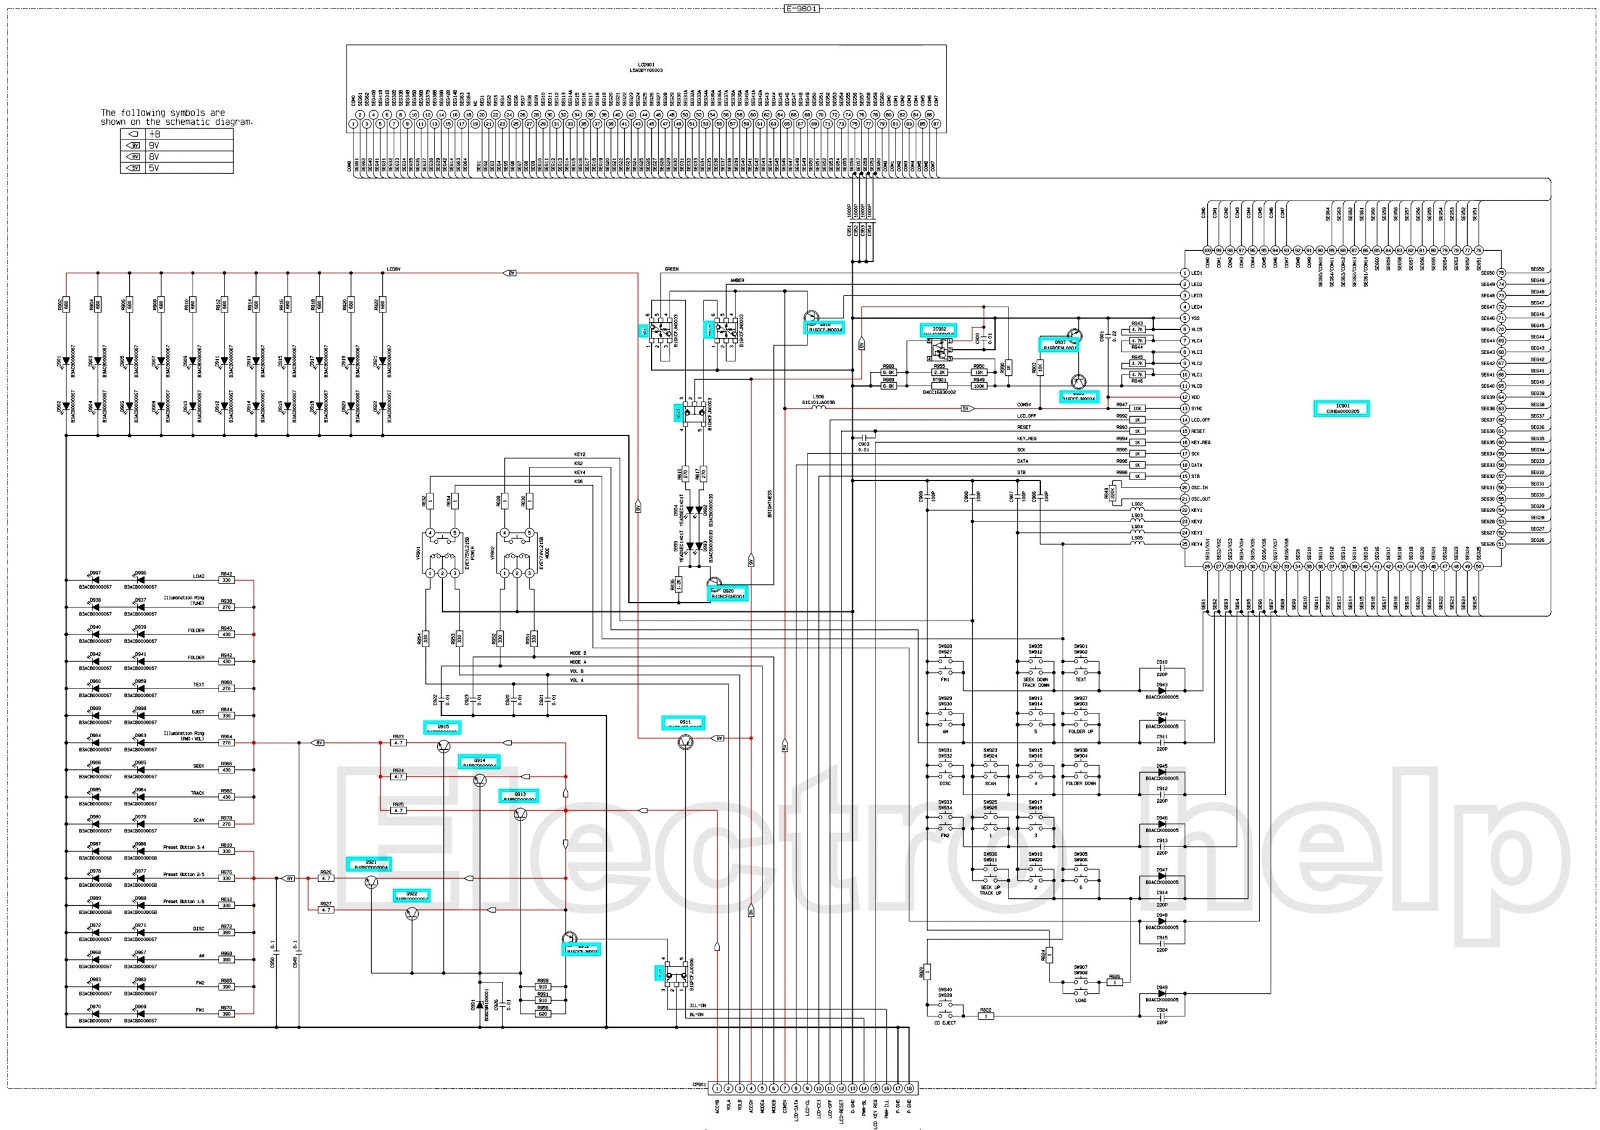 Toyota Corolla Cq Es7880az Circuit Diagram And Connection Details Also Headset Lifier Test Simplified Schematic Diagrams Main Block Display Click On The Schematics To Zoom In